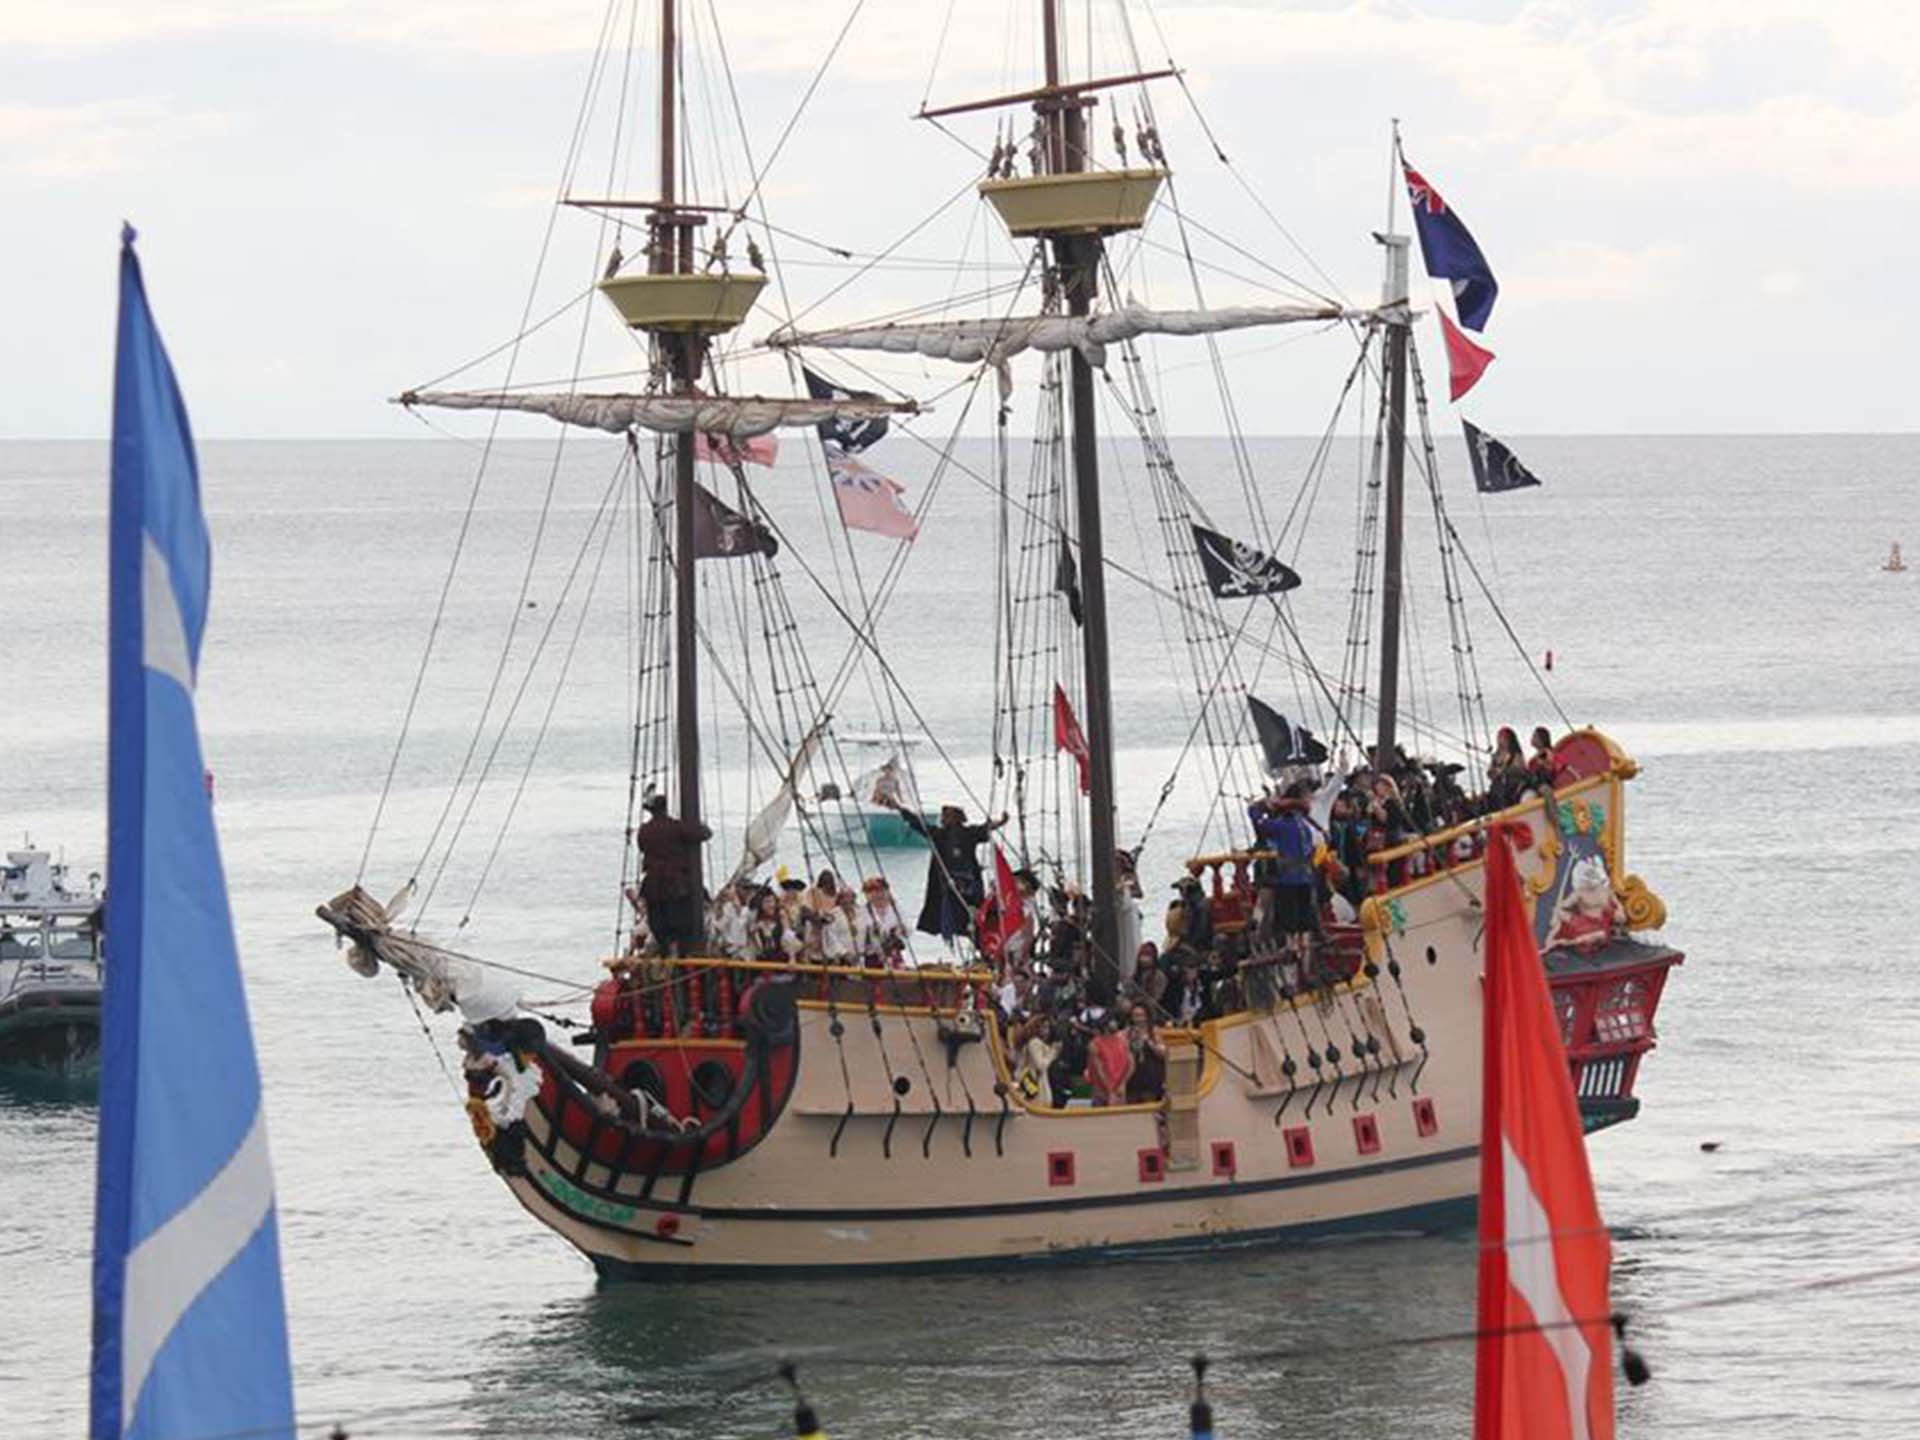 Take A Cruise On The Jolly Roger Pirate Ship Of The Cayman Islands - Pirate ship cruise